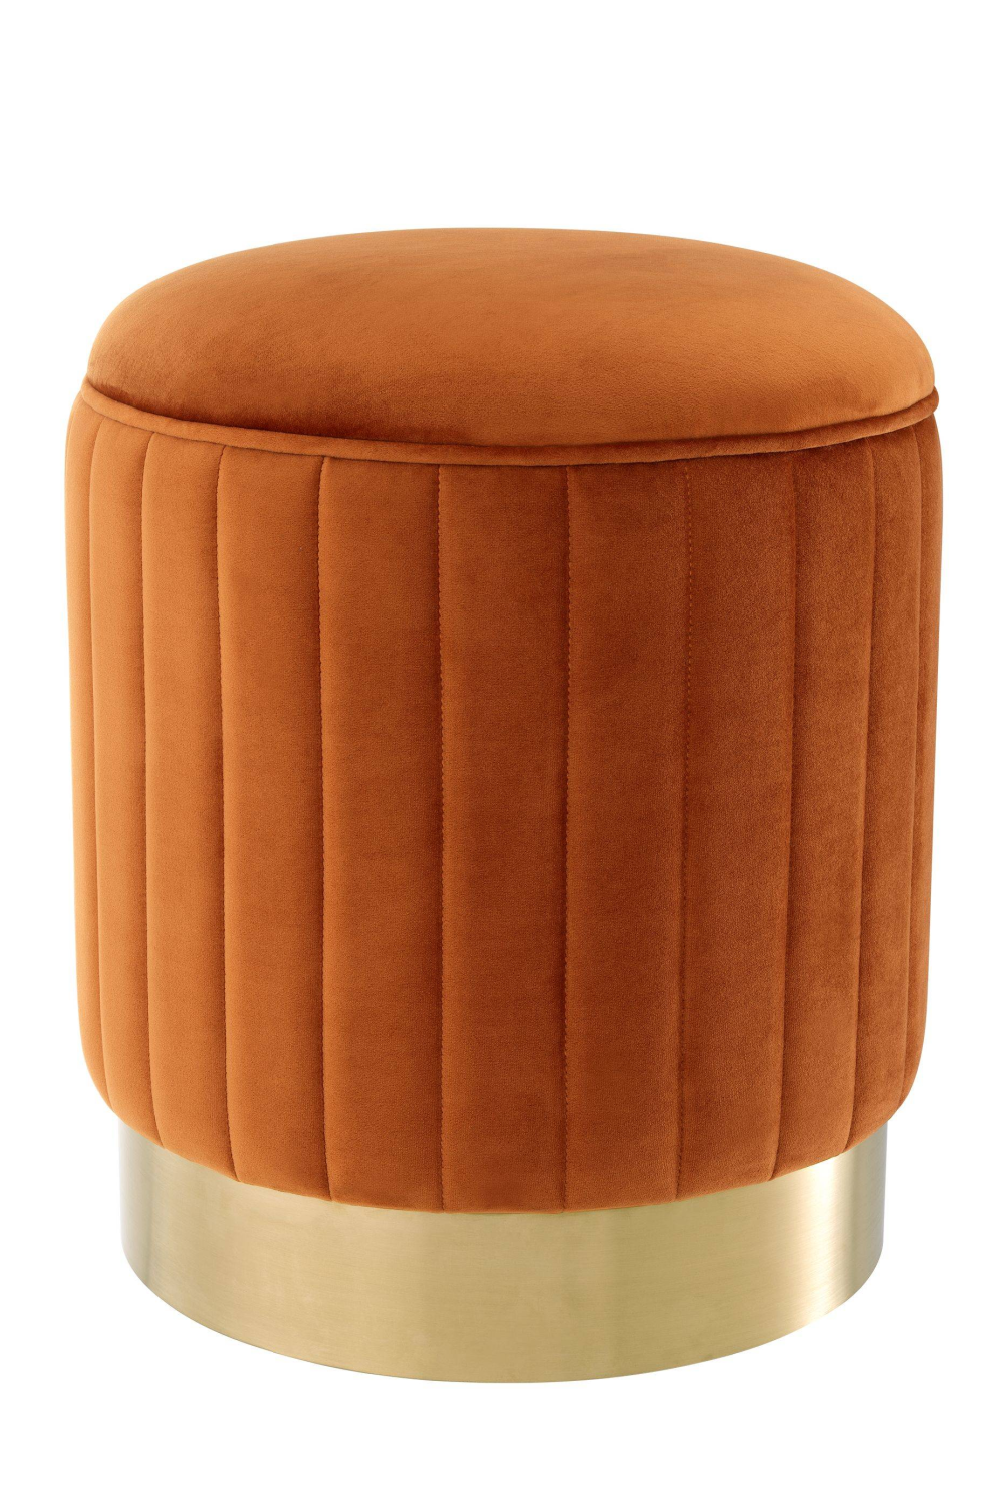 Orange Gold Base Stool | Eichholtz Allegra